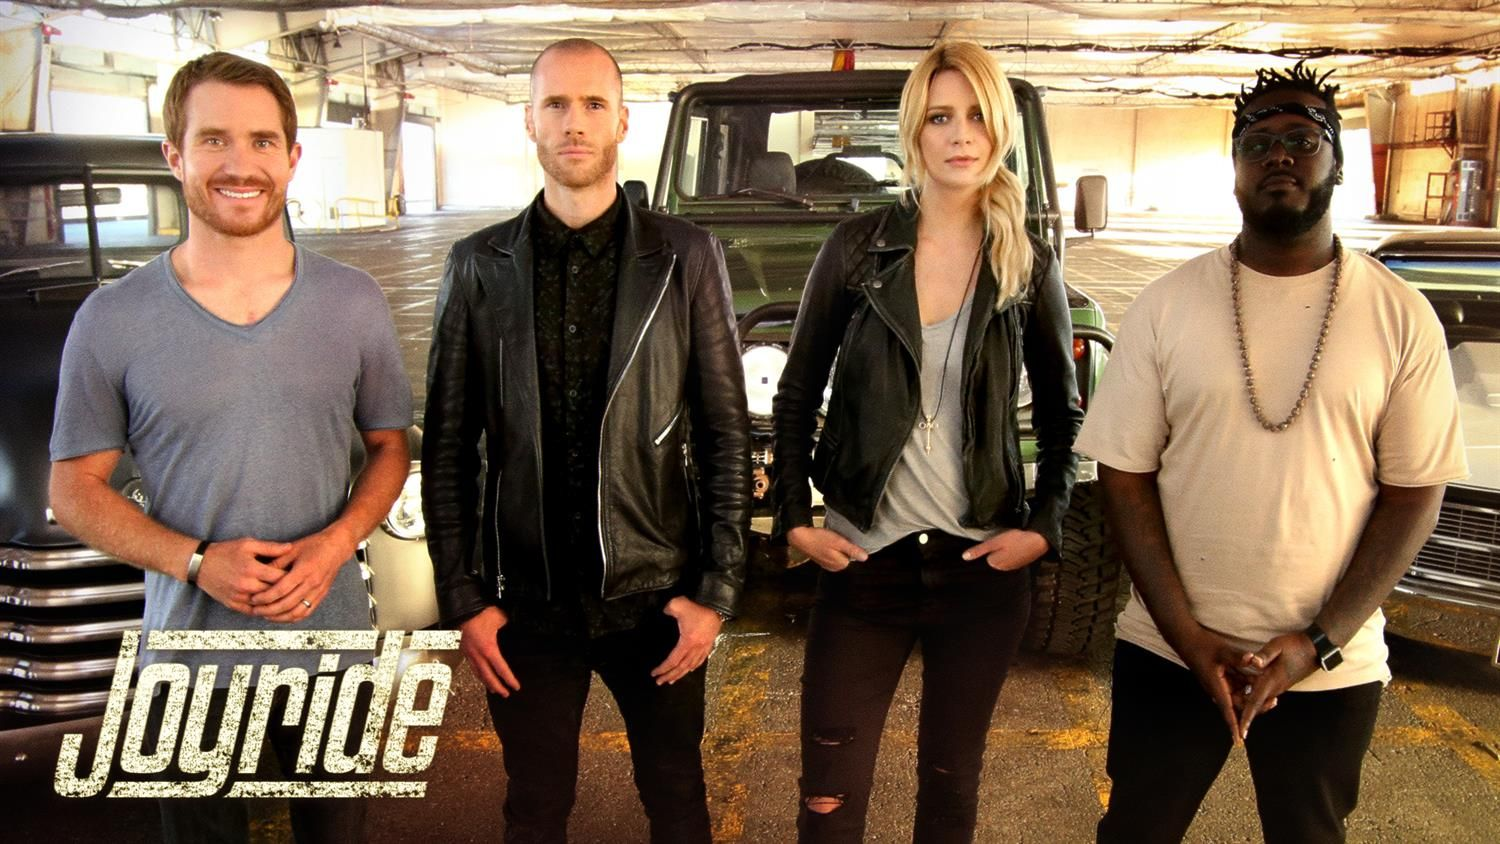 ���� - Esquire Network is yet to renew Joyride for season 2